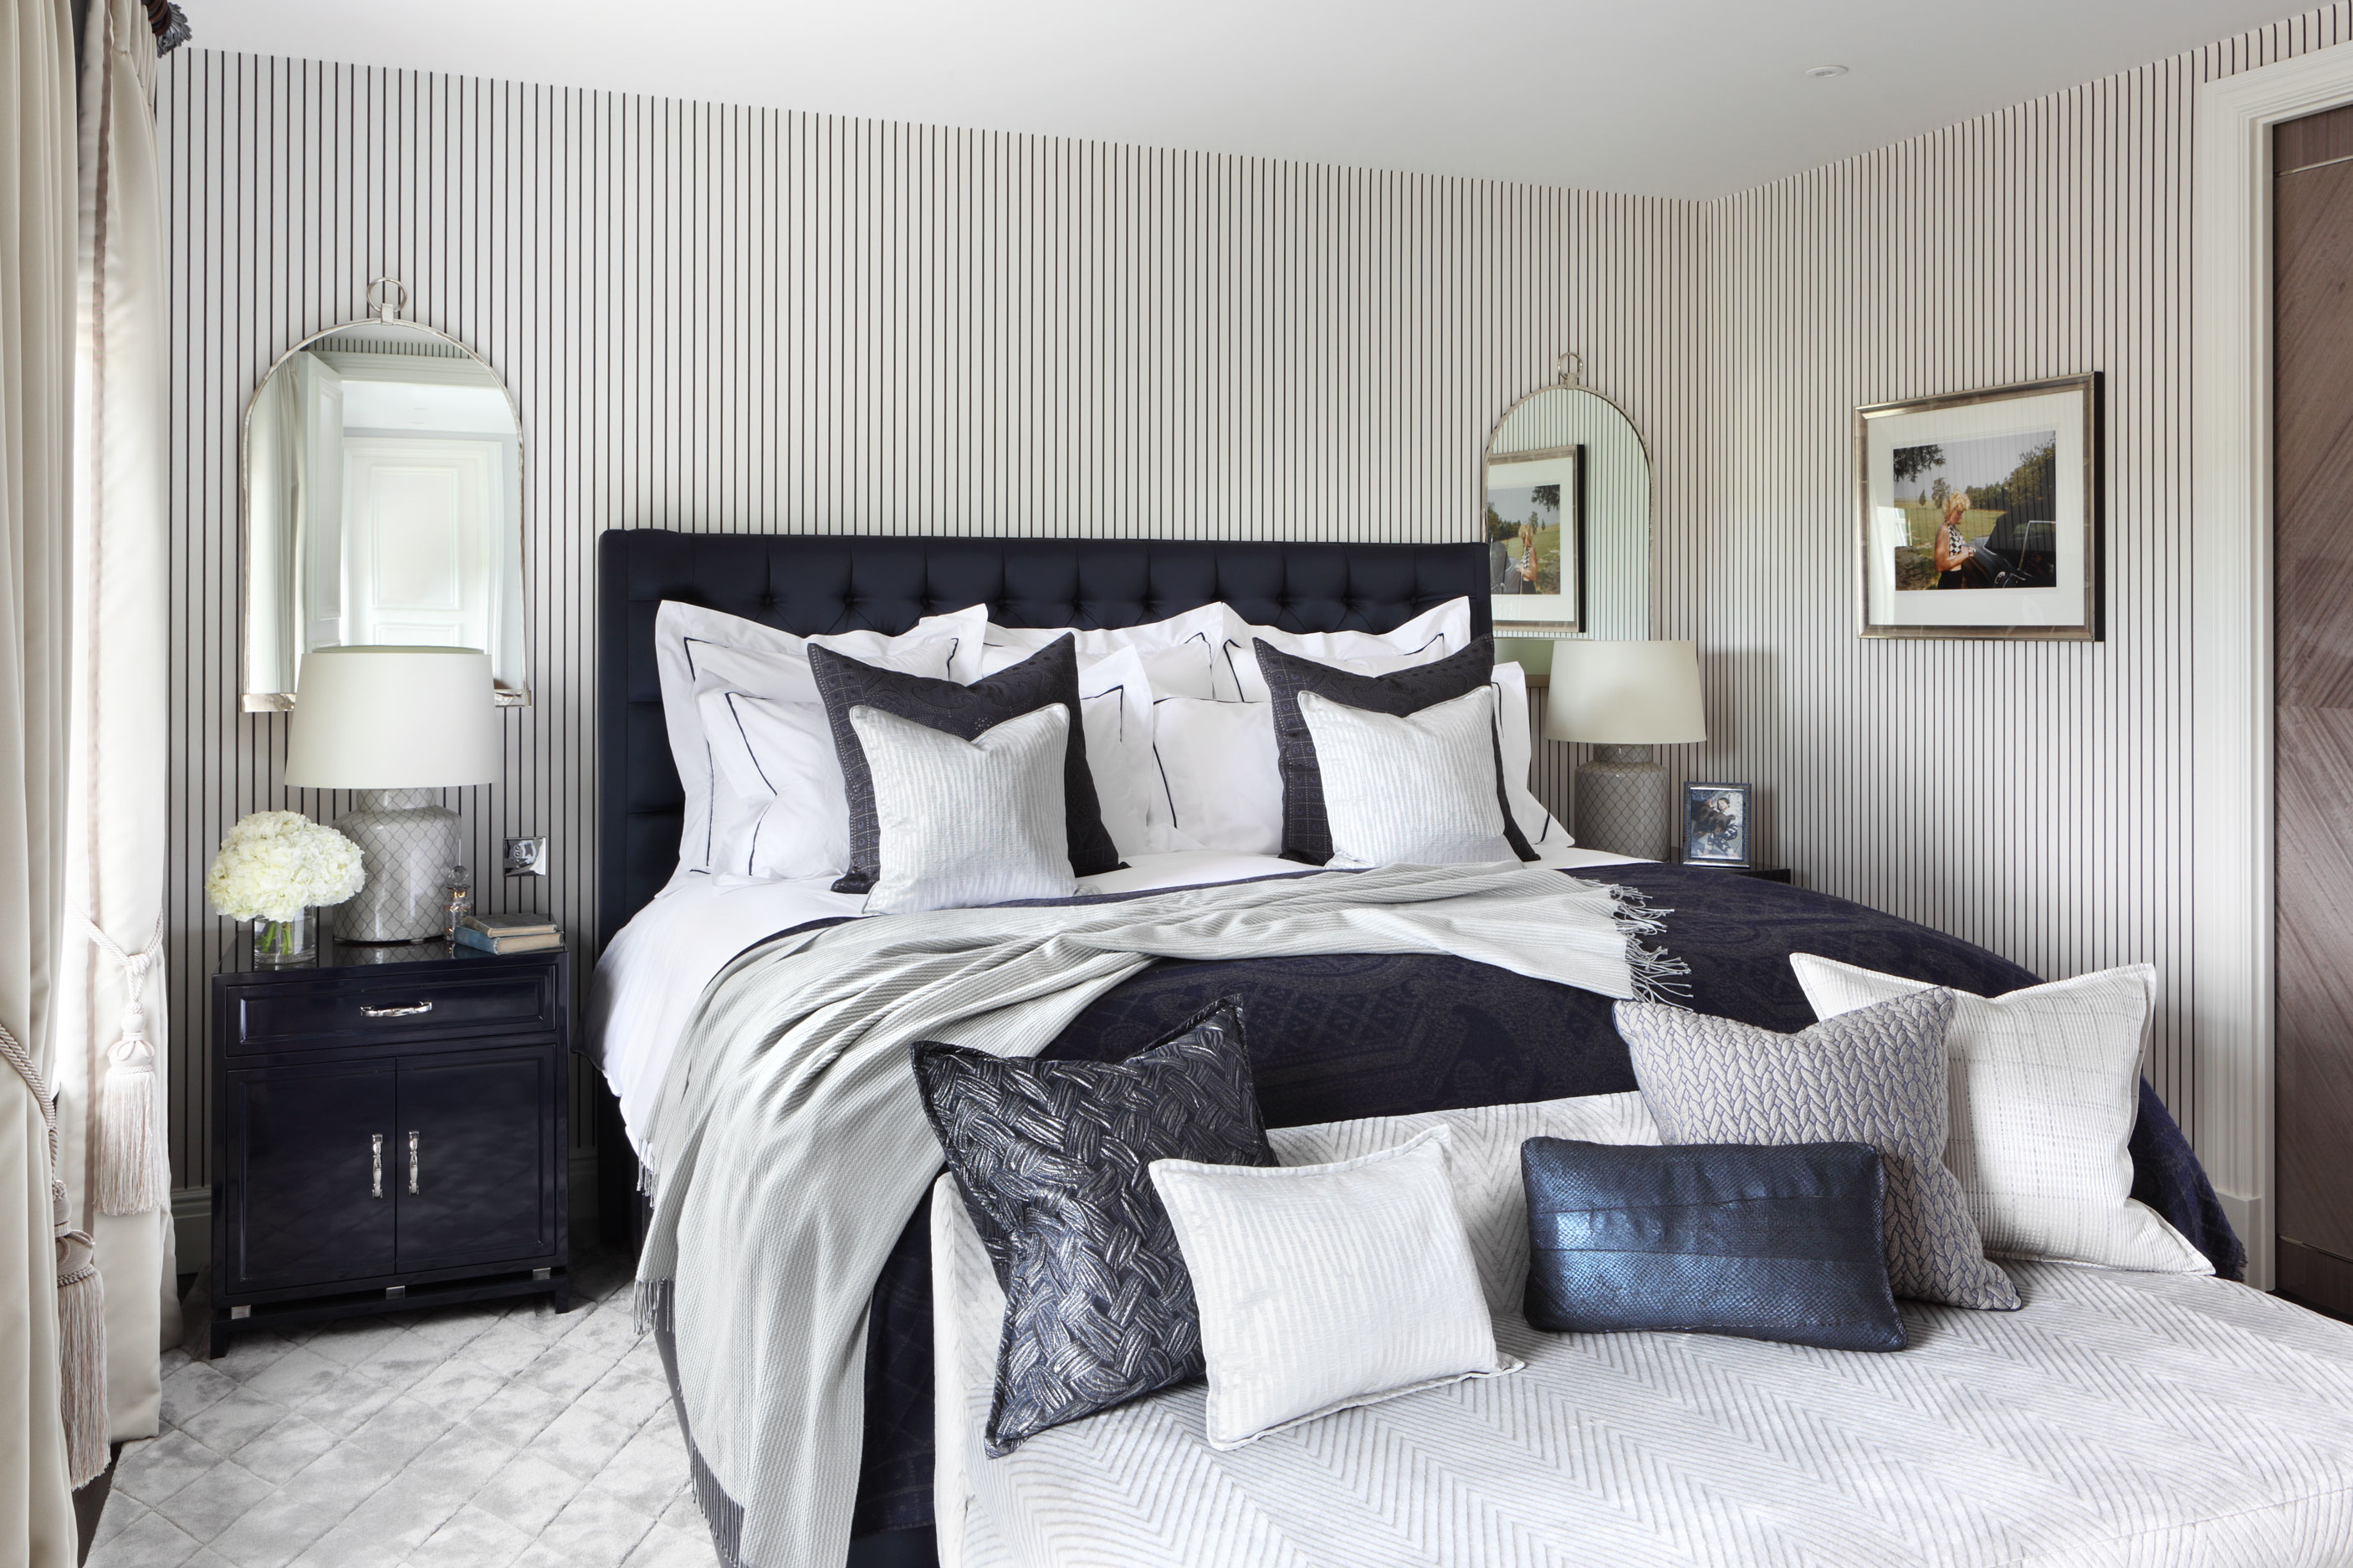 Bedroom Ideas 52 Modern Design Ideas For Your Bedroom The Luxpad for 12 Clever Concepts of How to Makeover Ideas For Modern Bedrooms